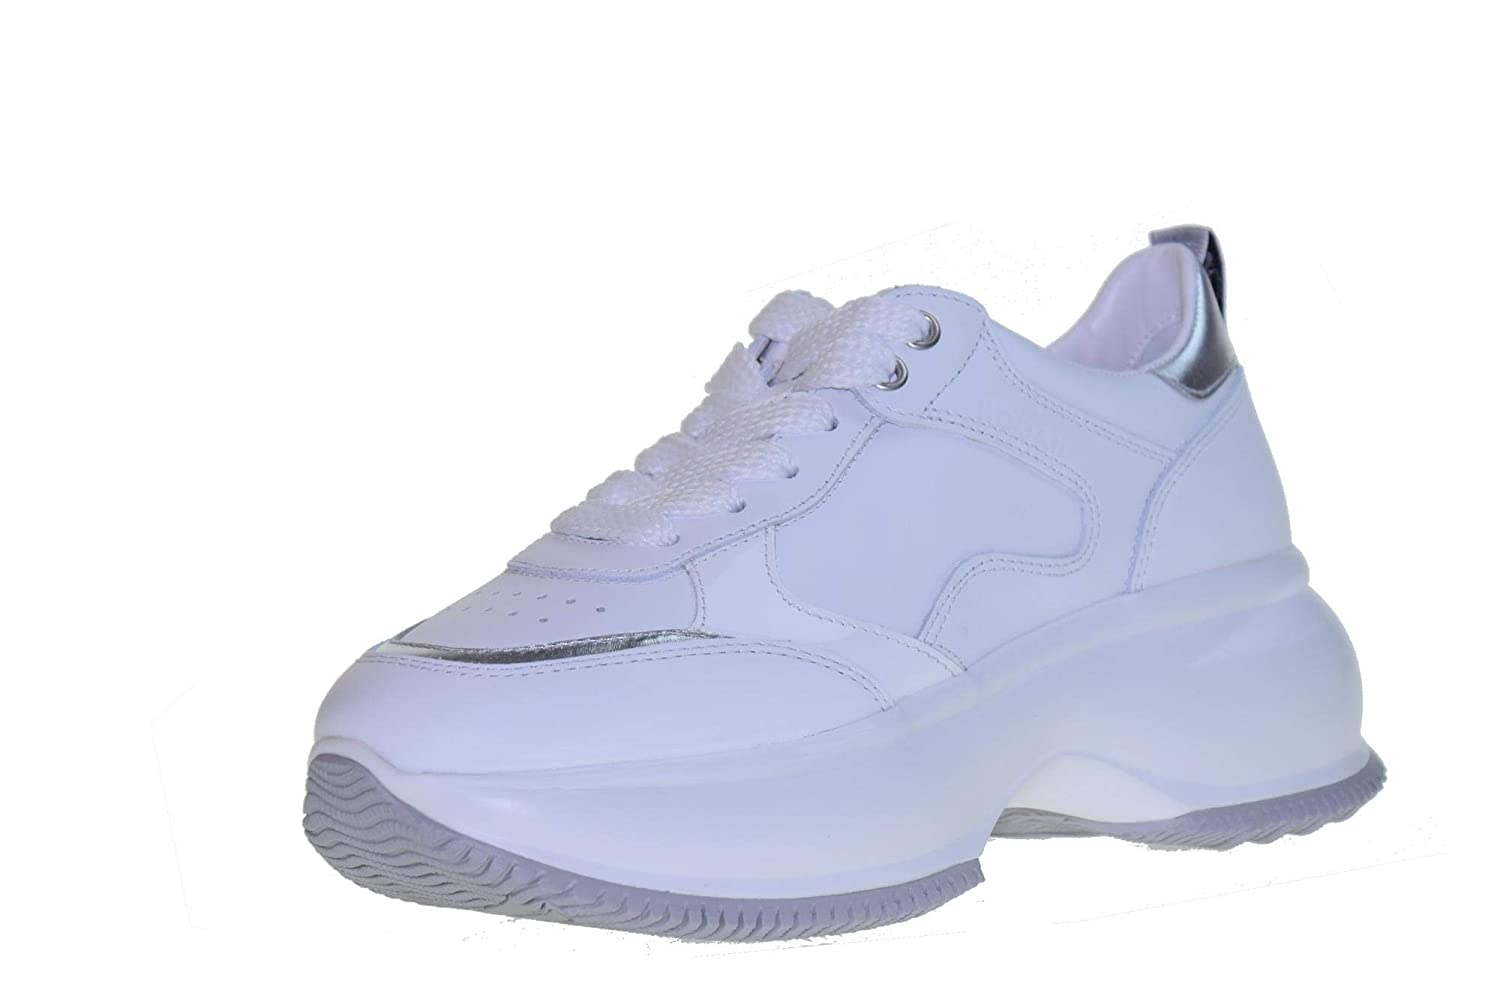 White   silver Hogan shoes Woman Low Sneakers with Platform HXW4350BN50IEC0351 Maxi White Silver